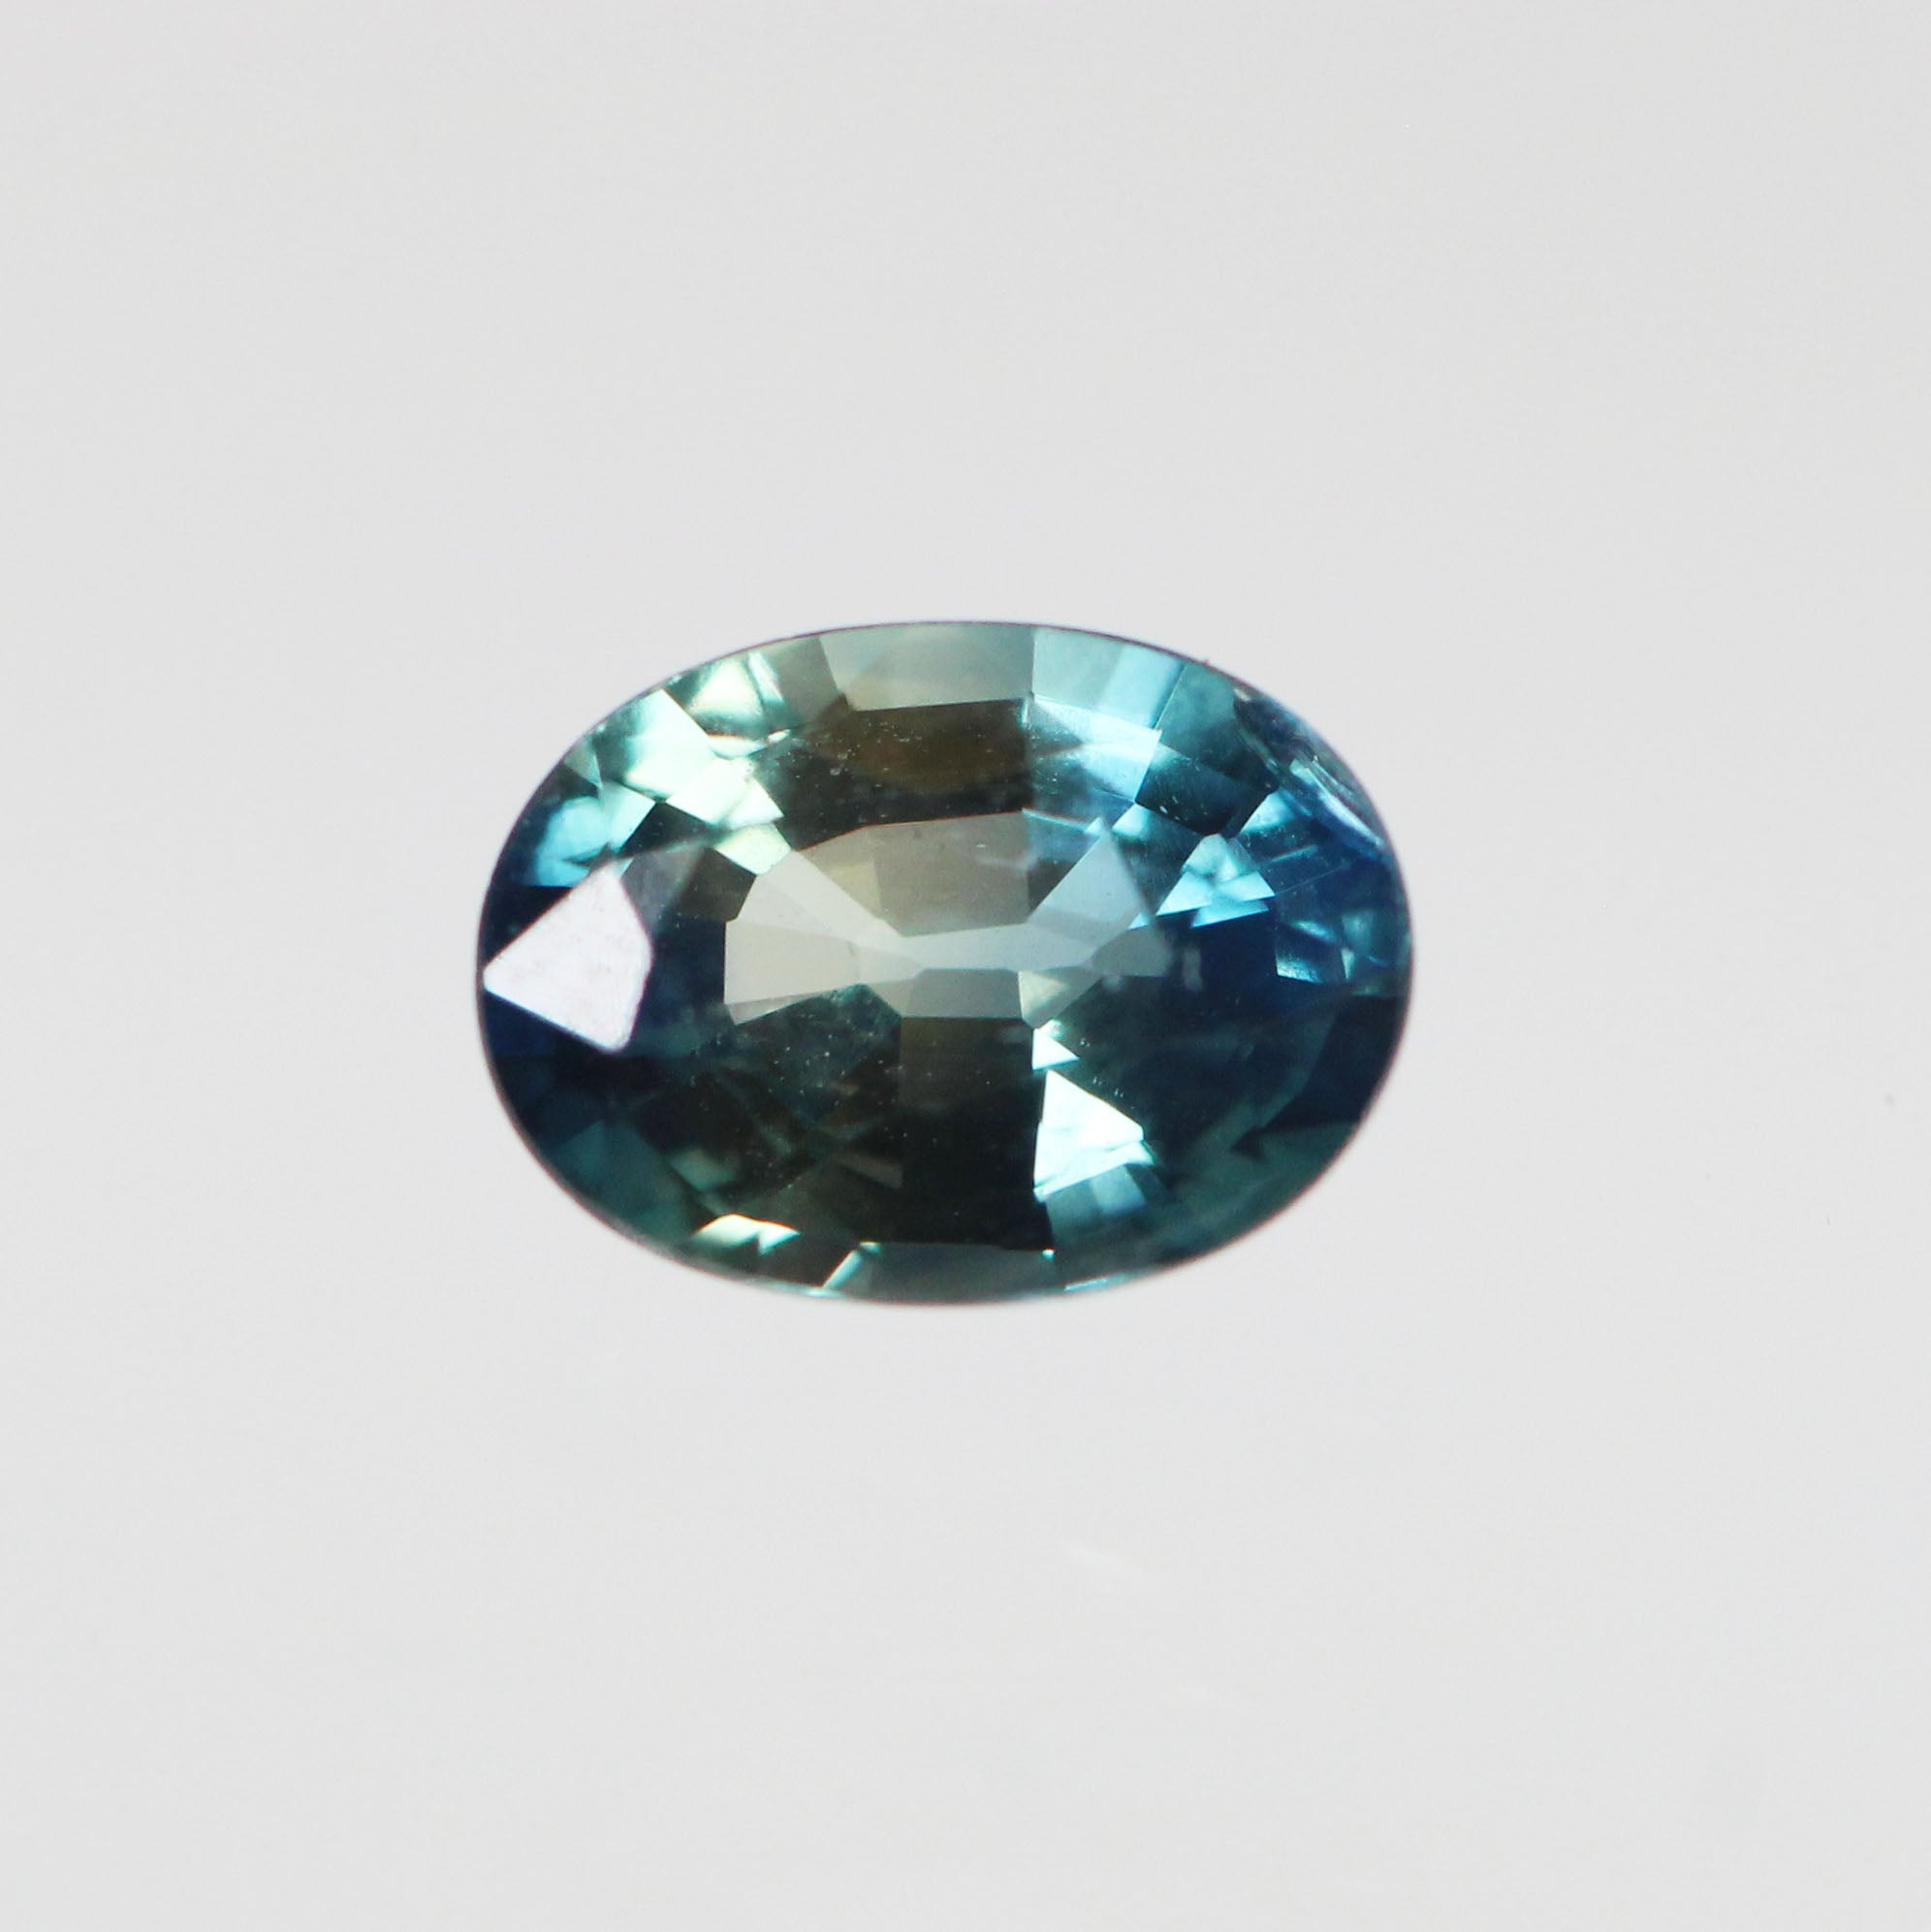 1.15 Carat Oval Sapphire for Custom Work - Inventory Code OBSA115 - Celestial Diamonds ® by Midwinter Co.